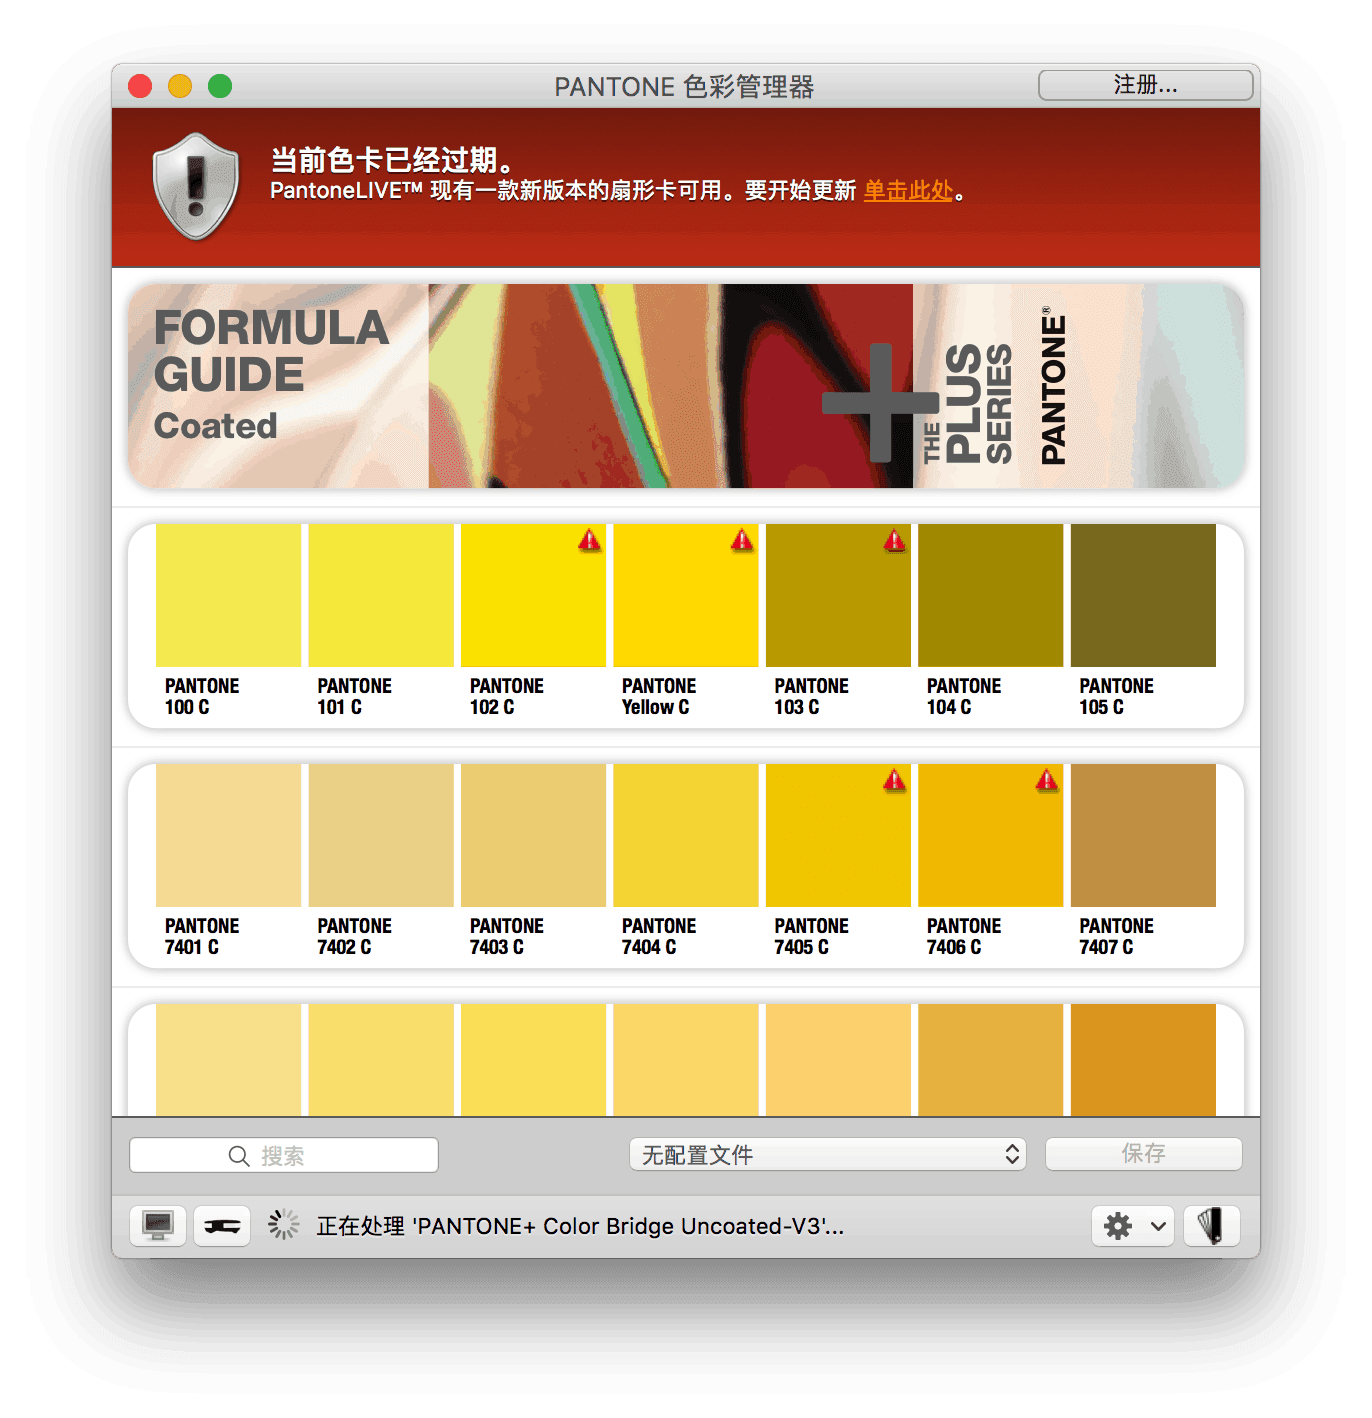 PANTONE Color Manager 2.2.0 色彩管理工具 素材管理 第3张